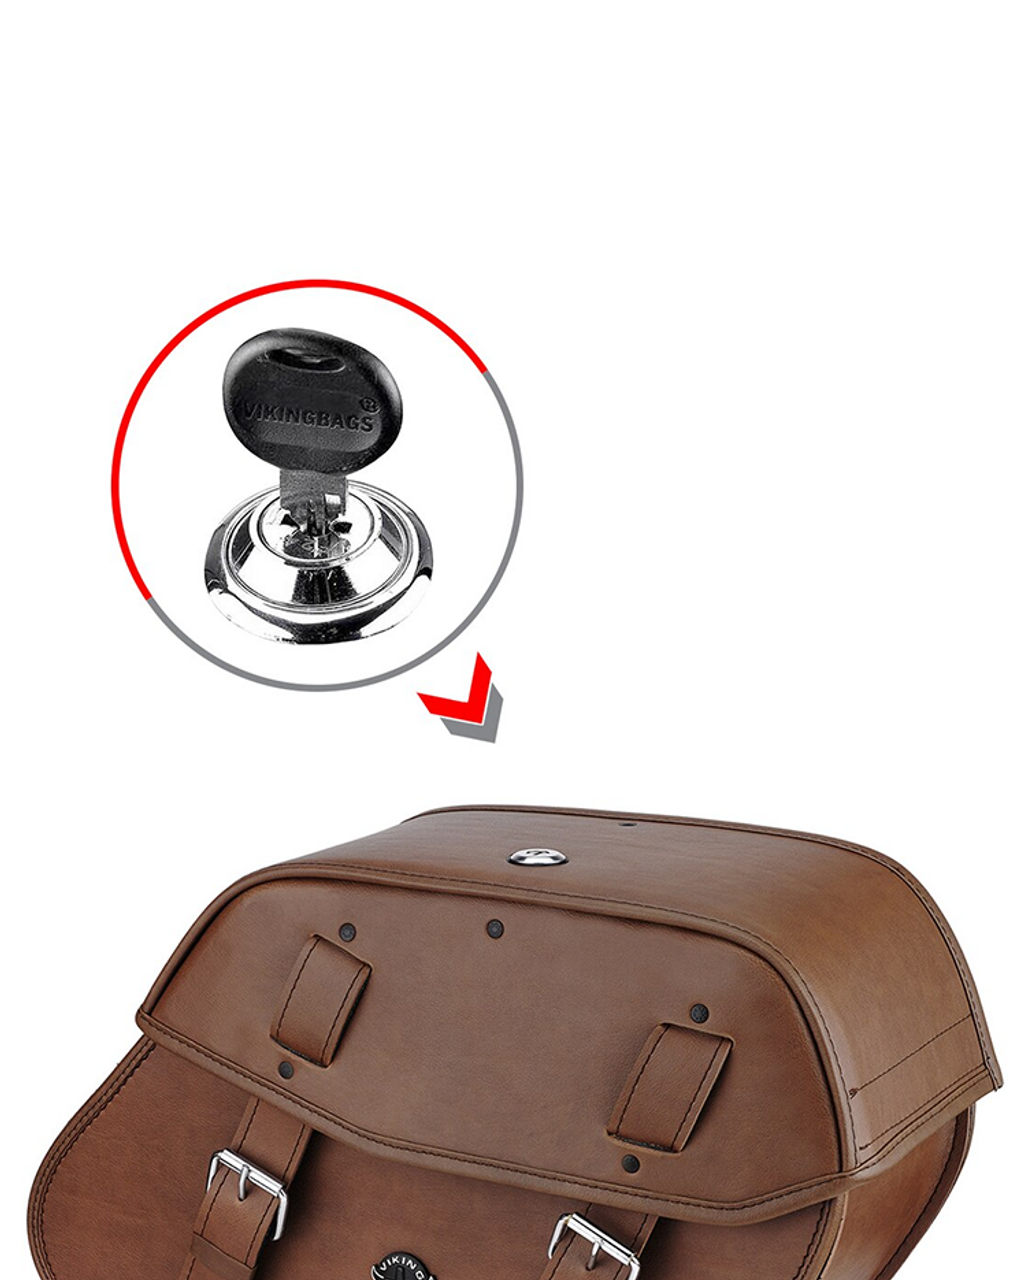 Viking Odin Brown Large Motorcycle Saddlebags For Harley Softail Night Train FXSTB Key lockable View